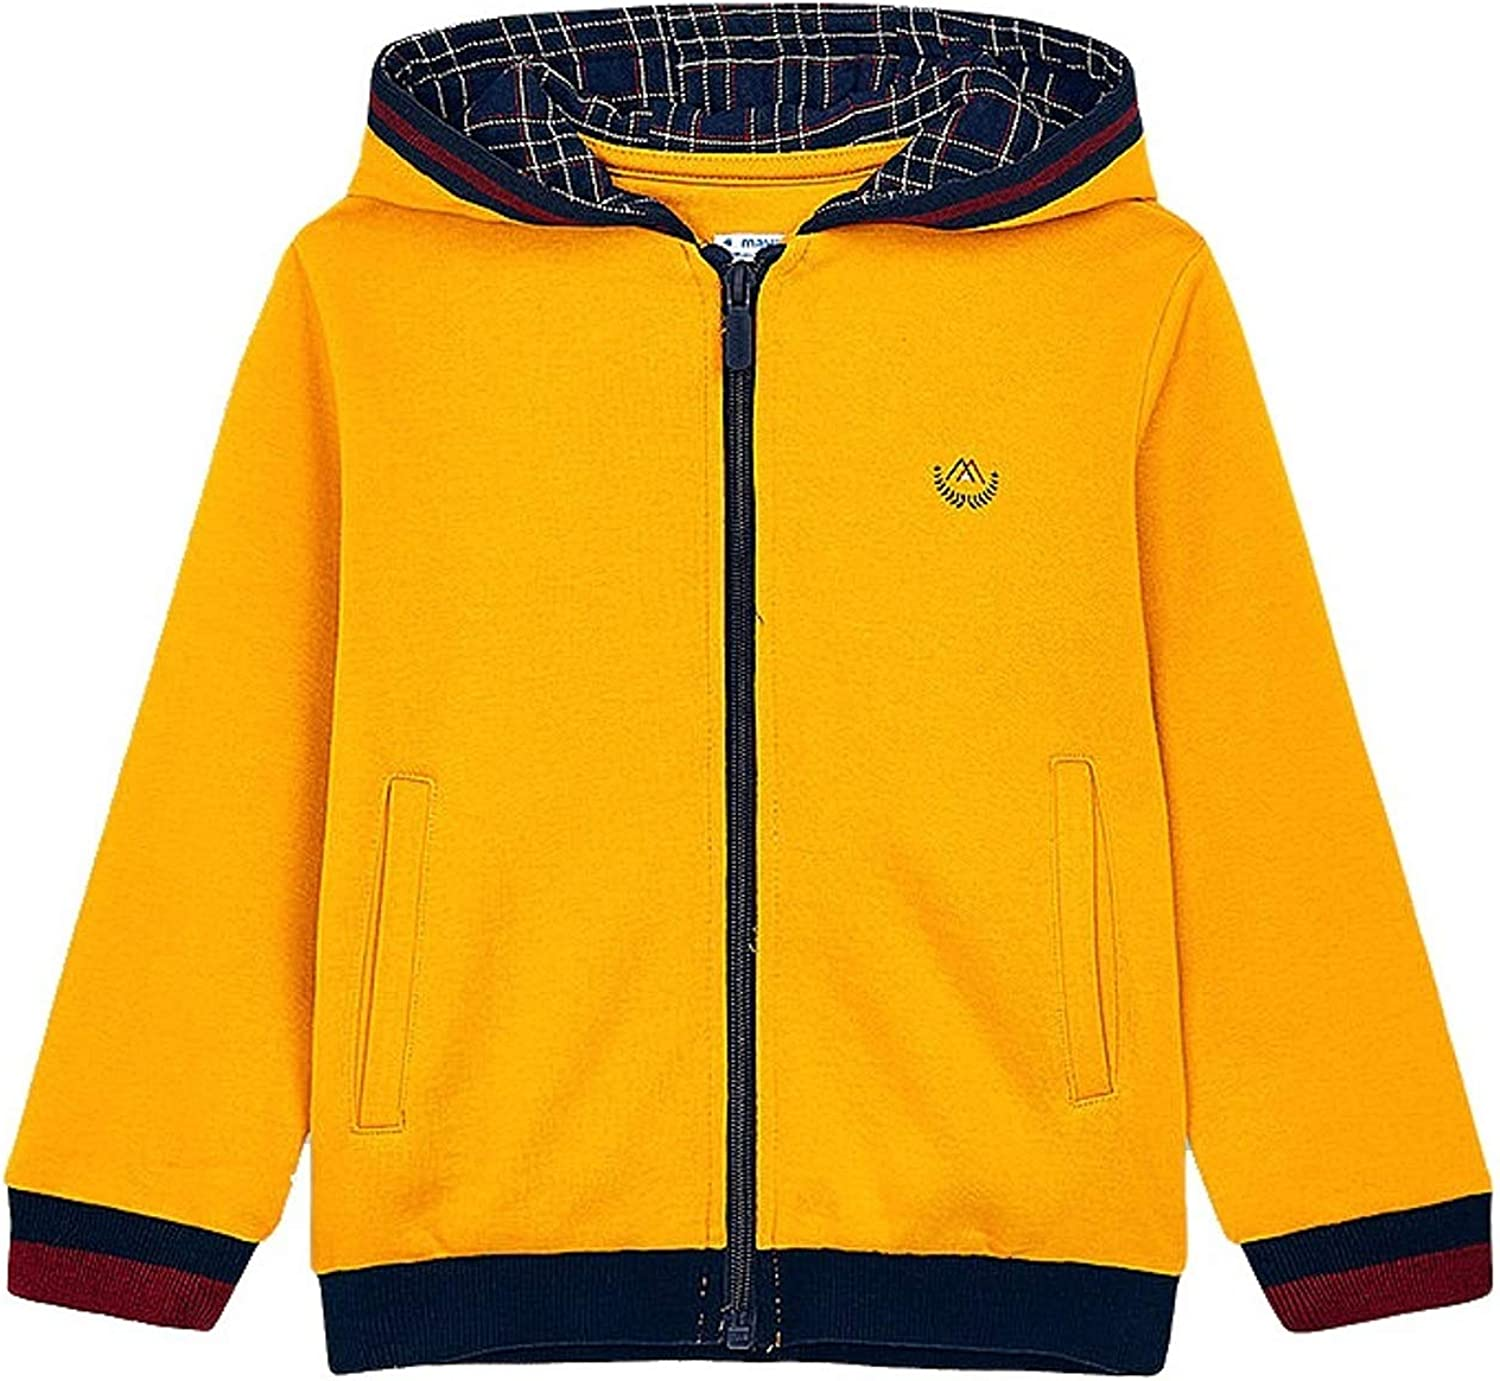 Mayoral - Contrast Hoodie for Boys - 4486, Wheat